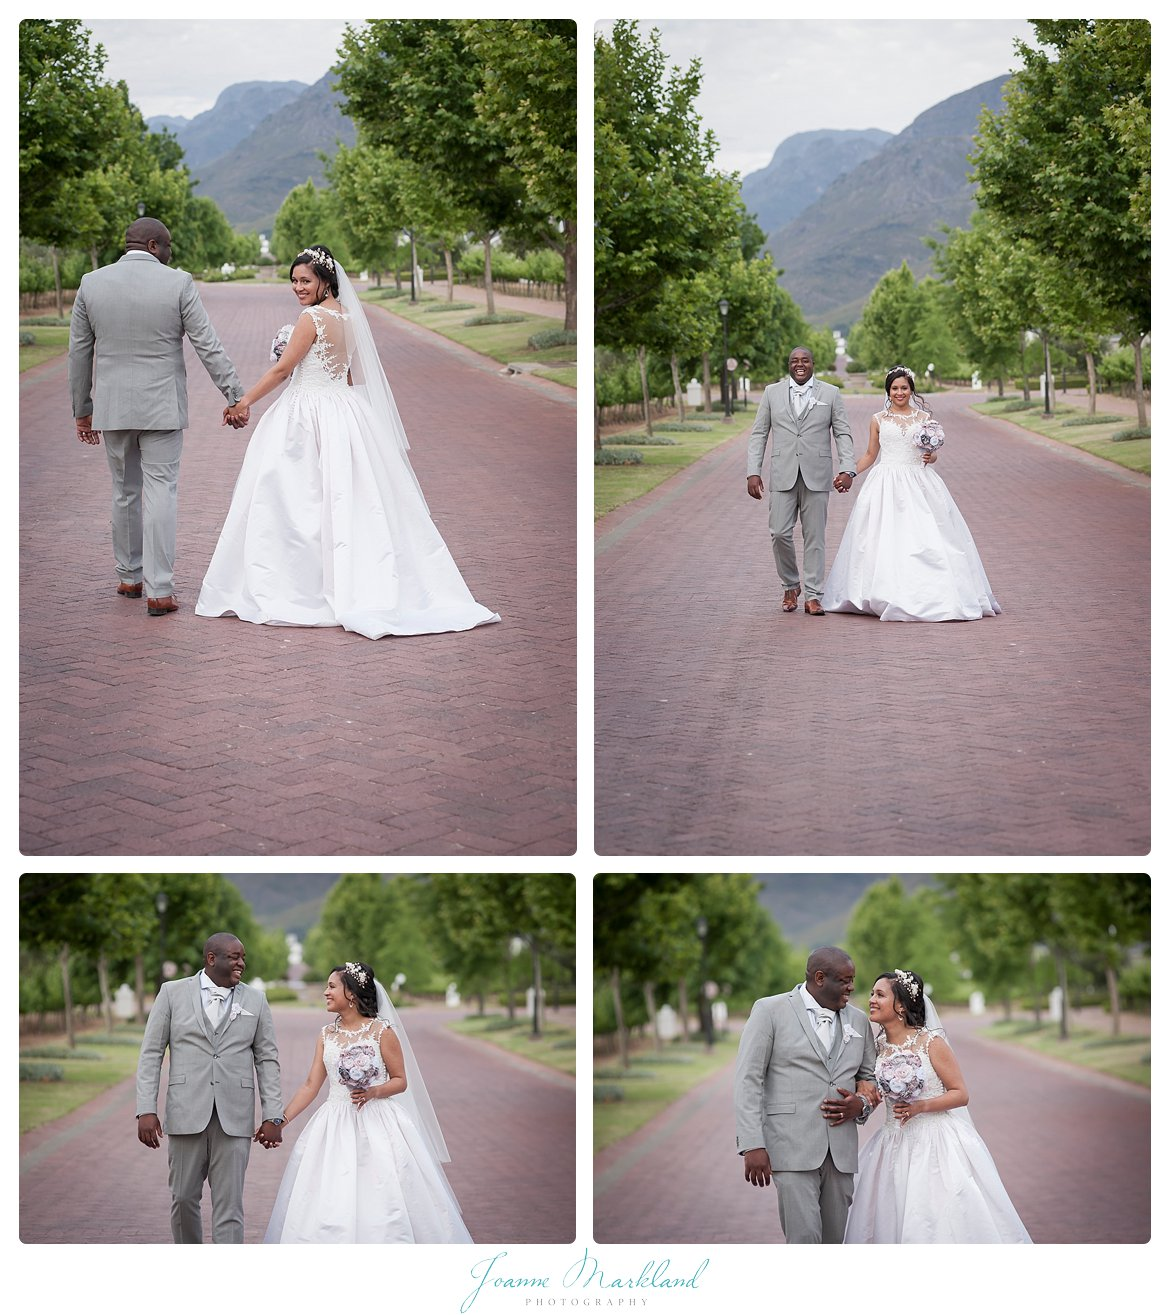 Valdevie_wedding_joanne_markland_photography_paarl-042